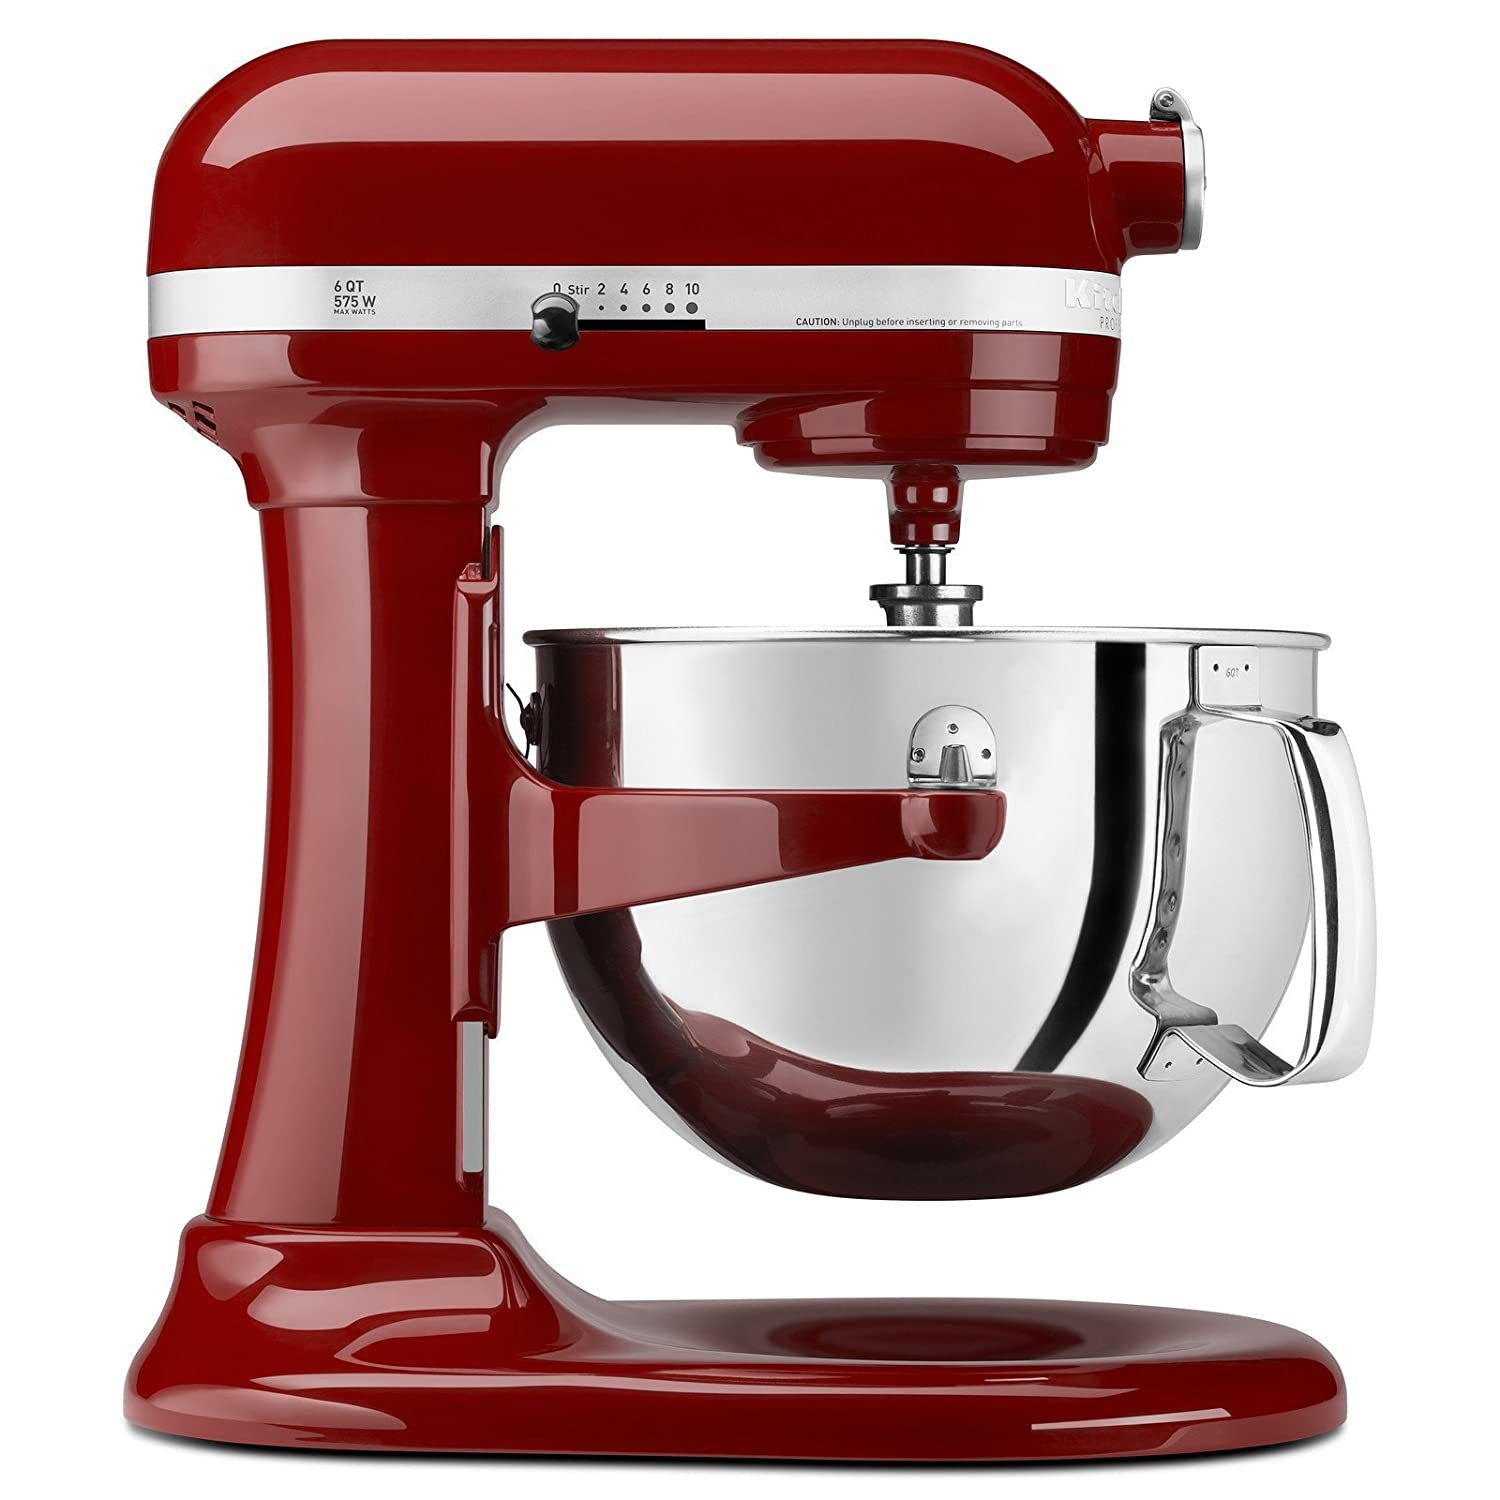 KitchenAid 6-quart Pro 600 Bowl-Lift Stand Mixer Certified Refurbished